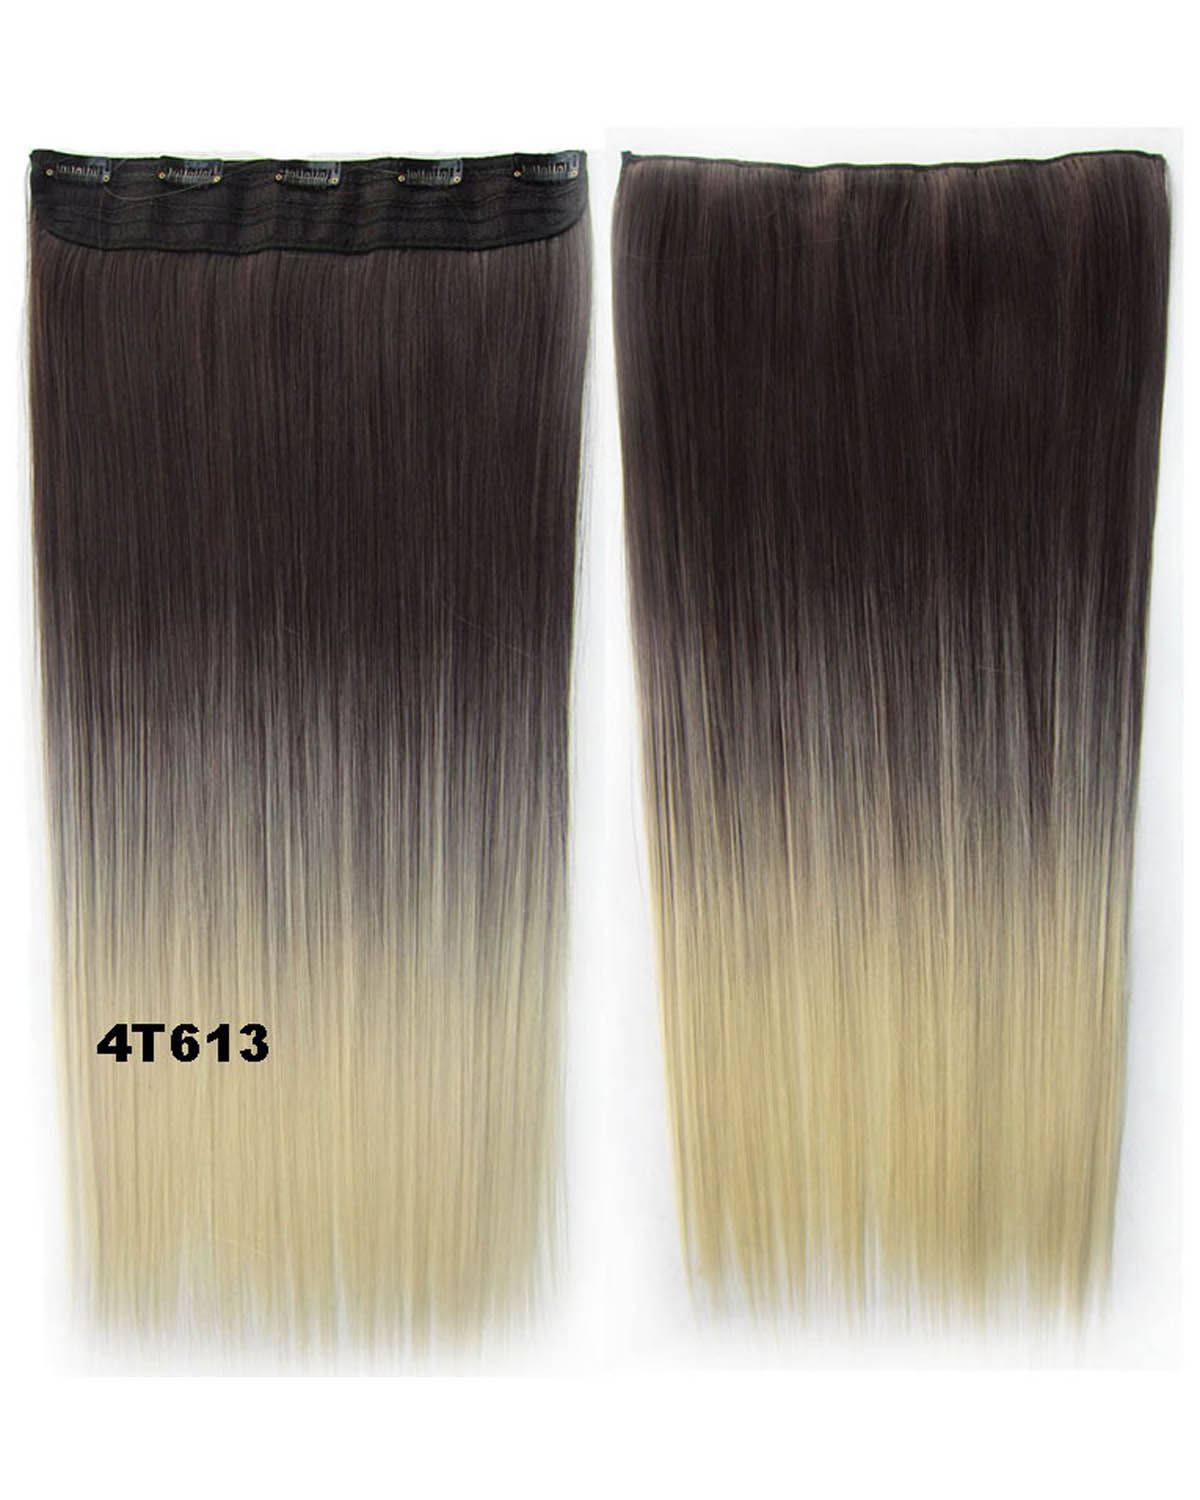 24 Inch Female Popular and Salable Long Straight One Piece 5 Clips Clip in Synthetic Hair Extension Ombre Two tone GS-666 4T613